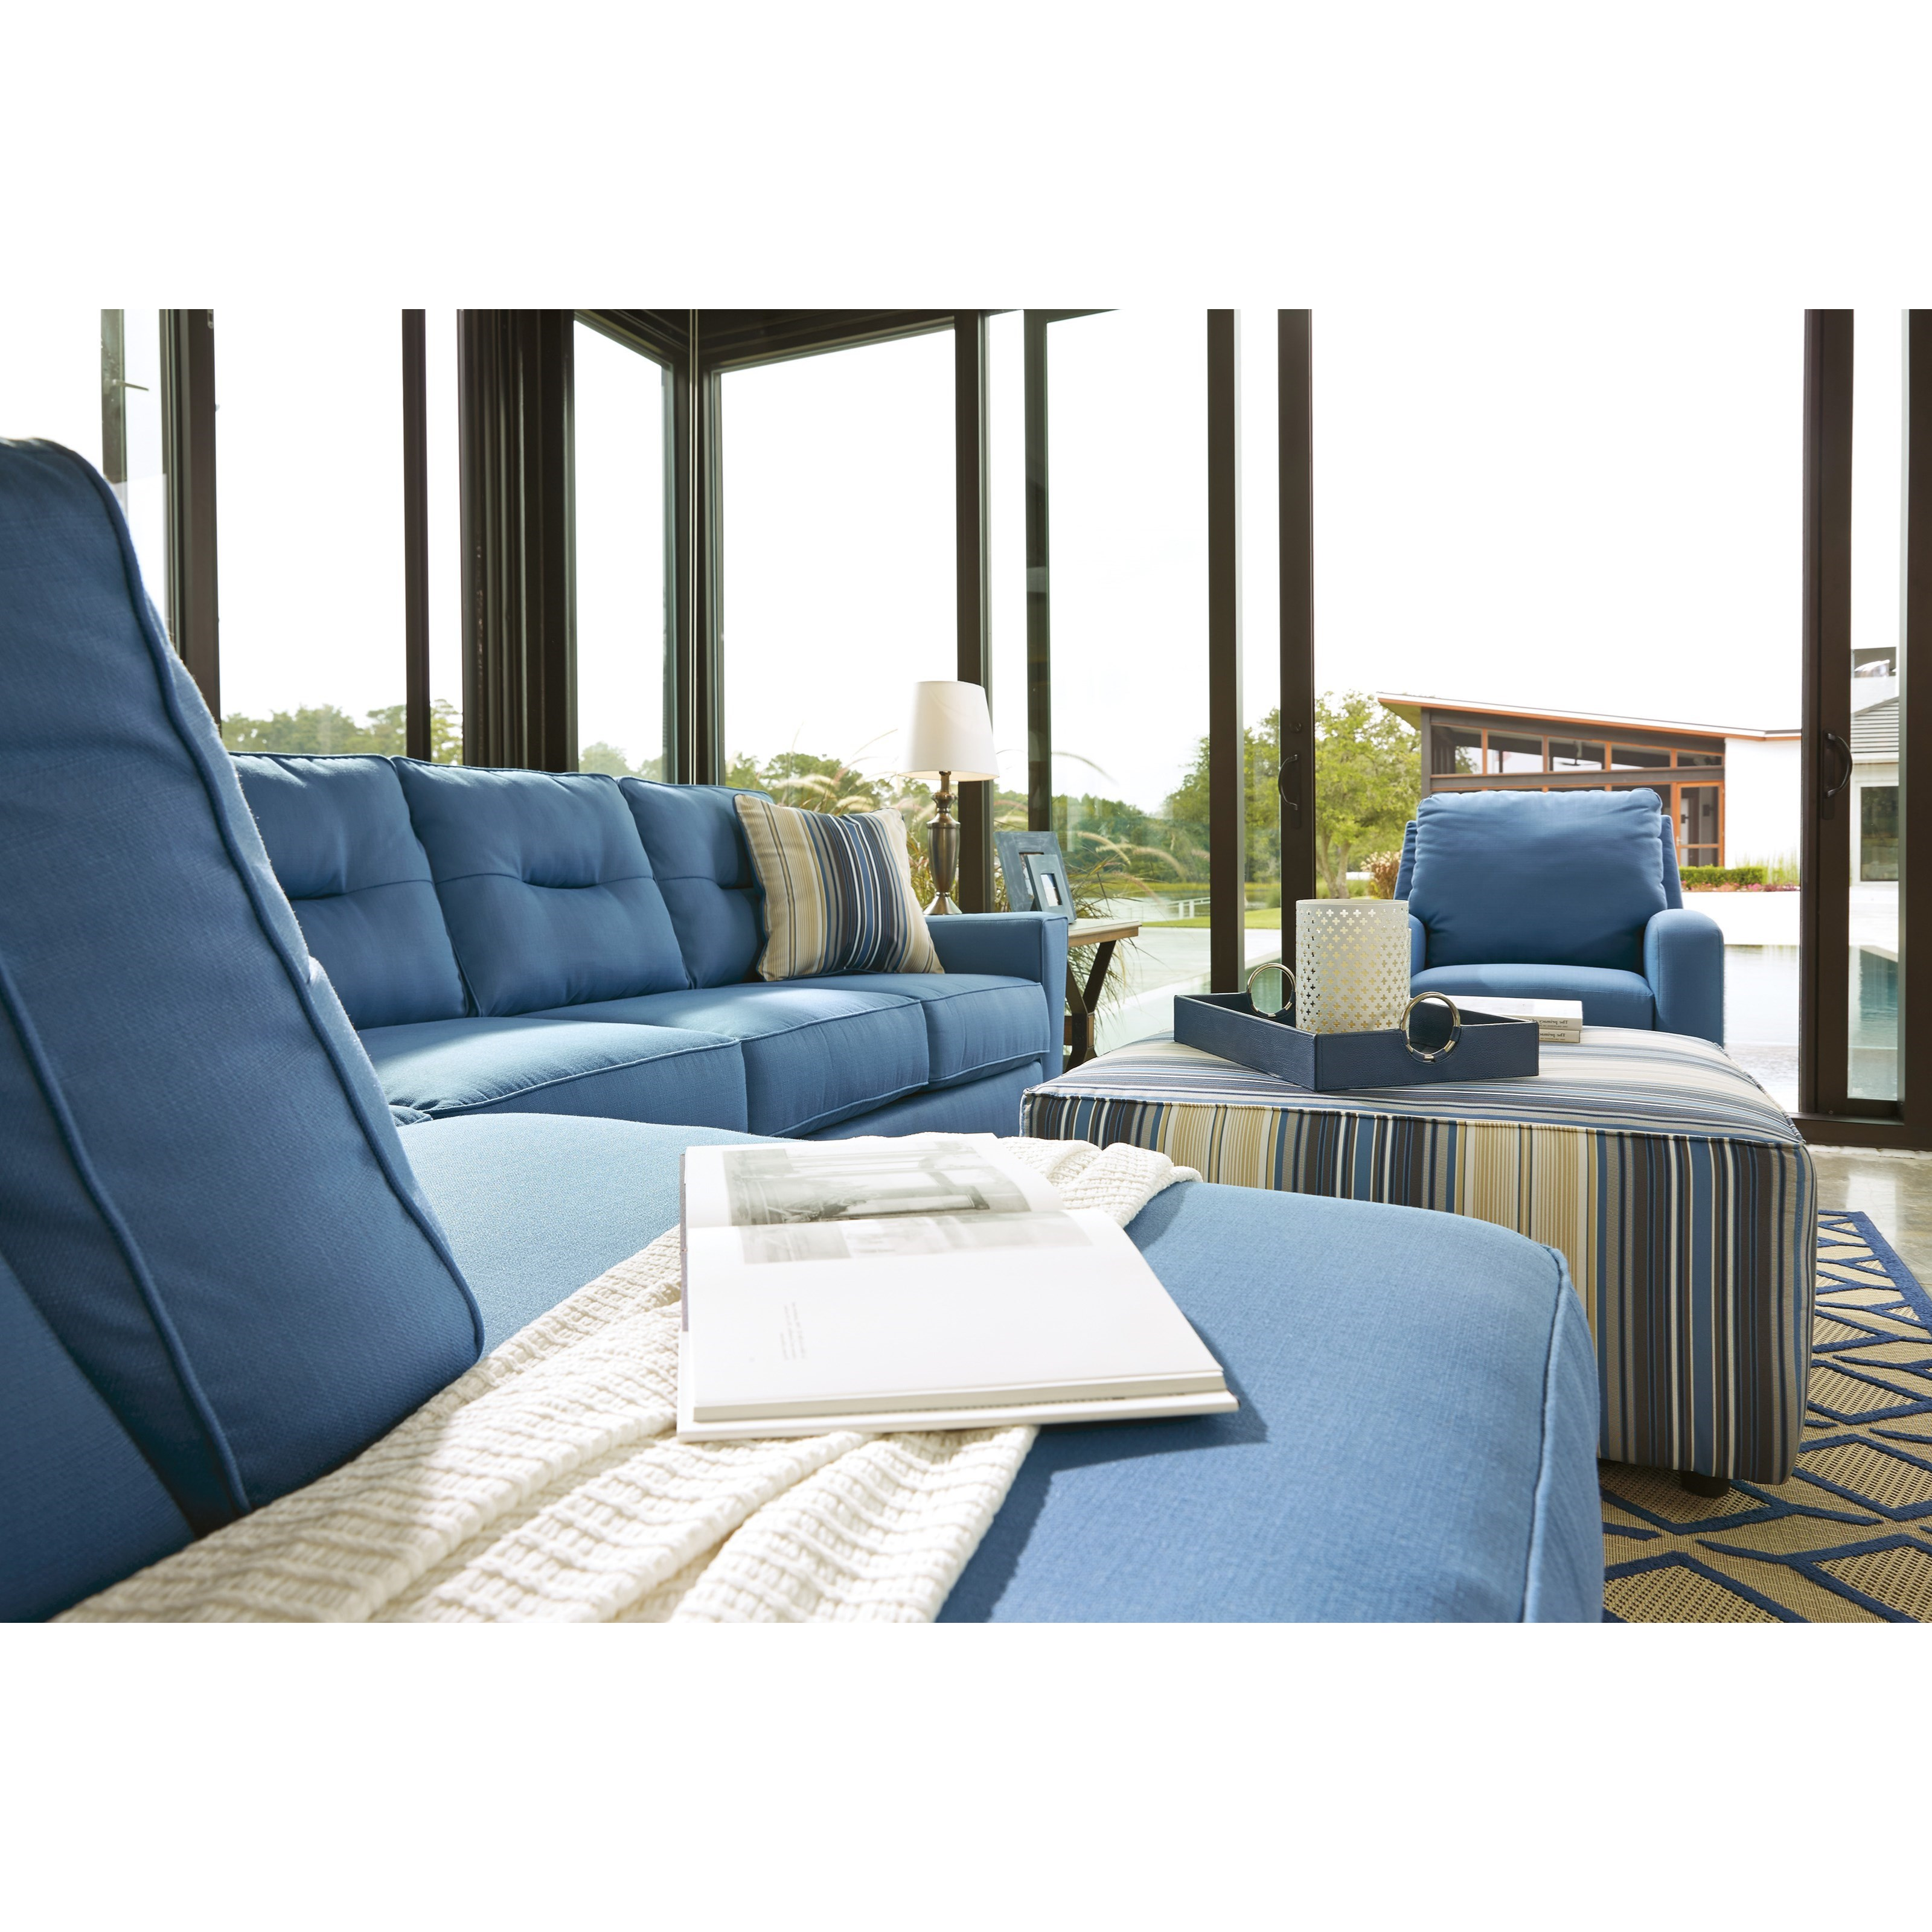 Benchcraft kirwin nuvella sectional with sleeper sofa for Benchcraft chaise lounge